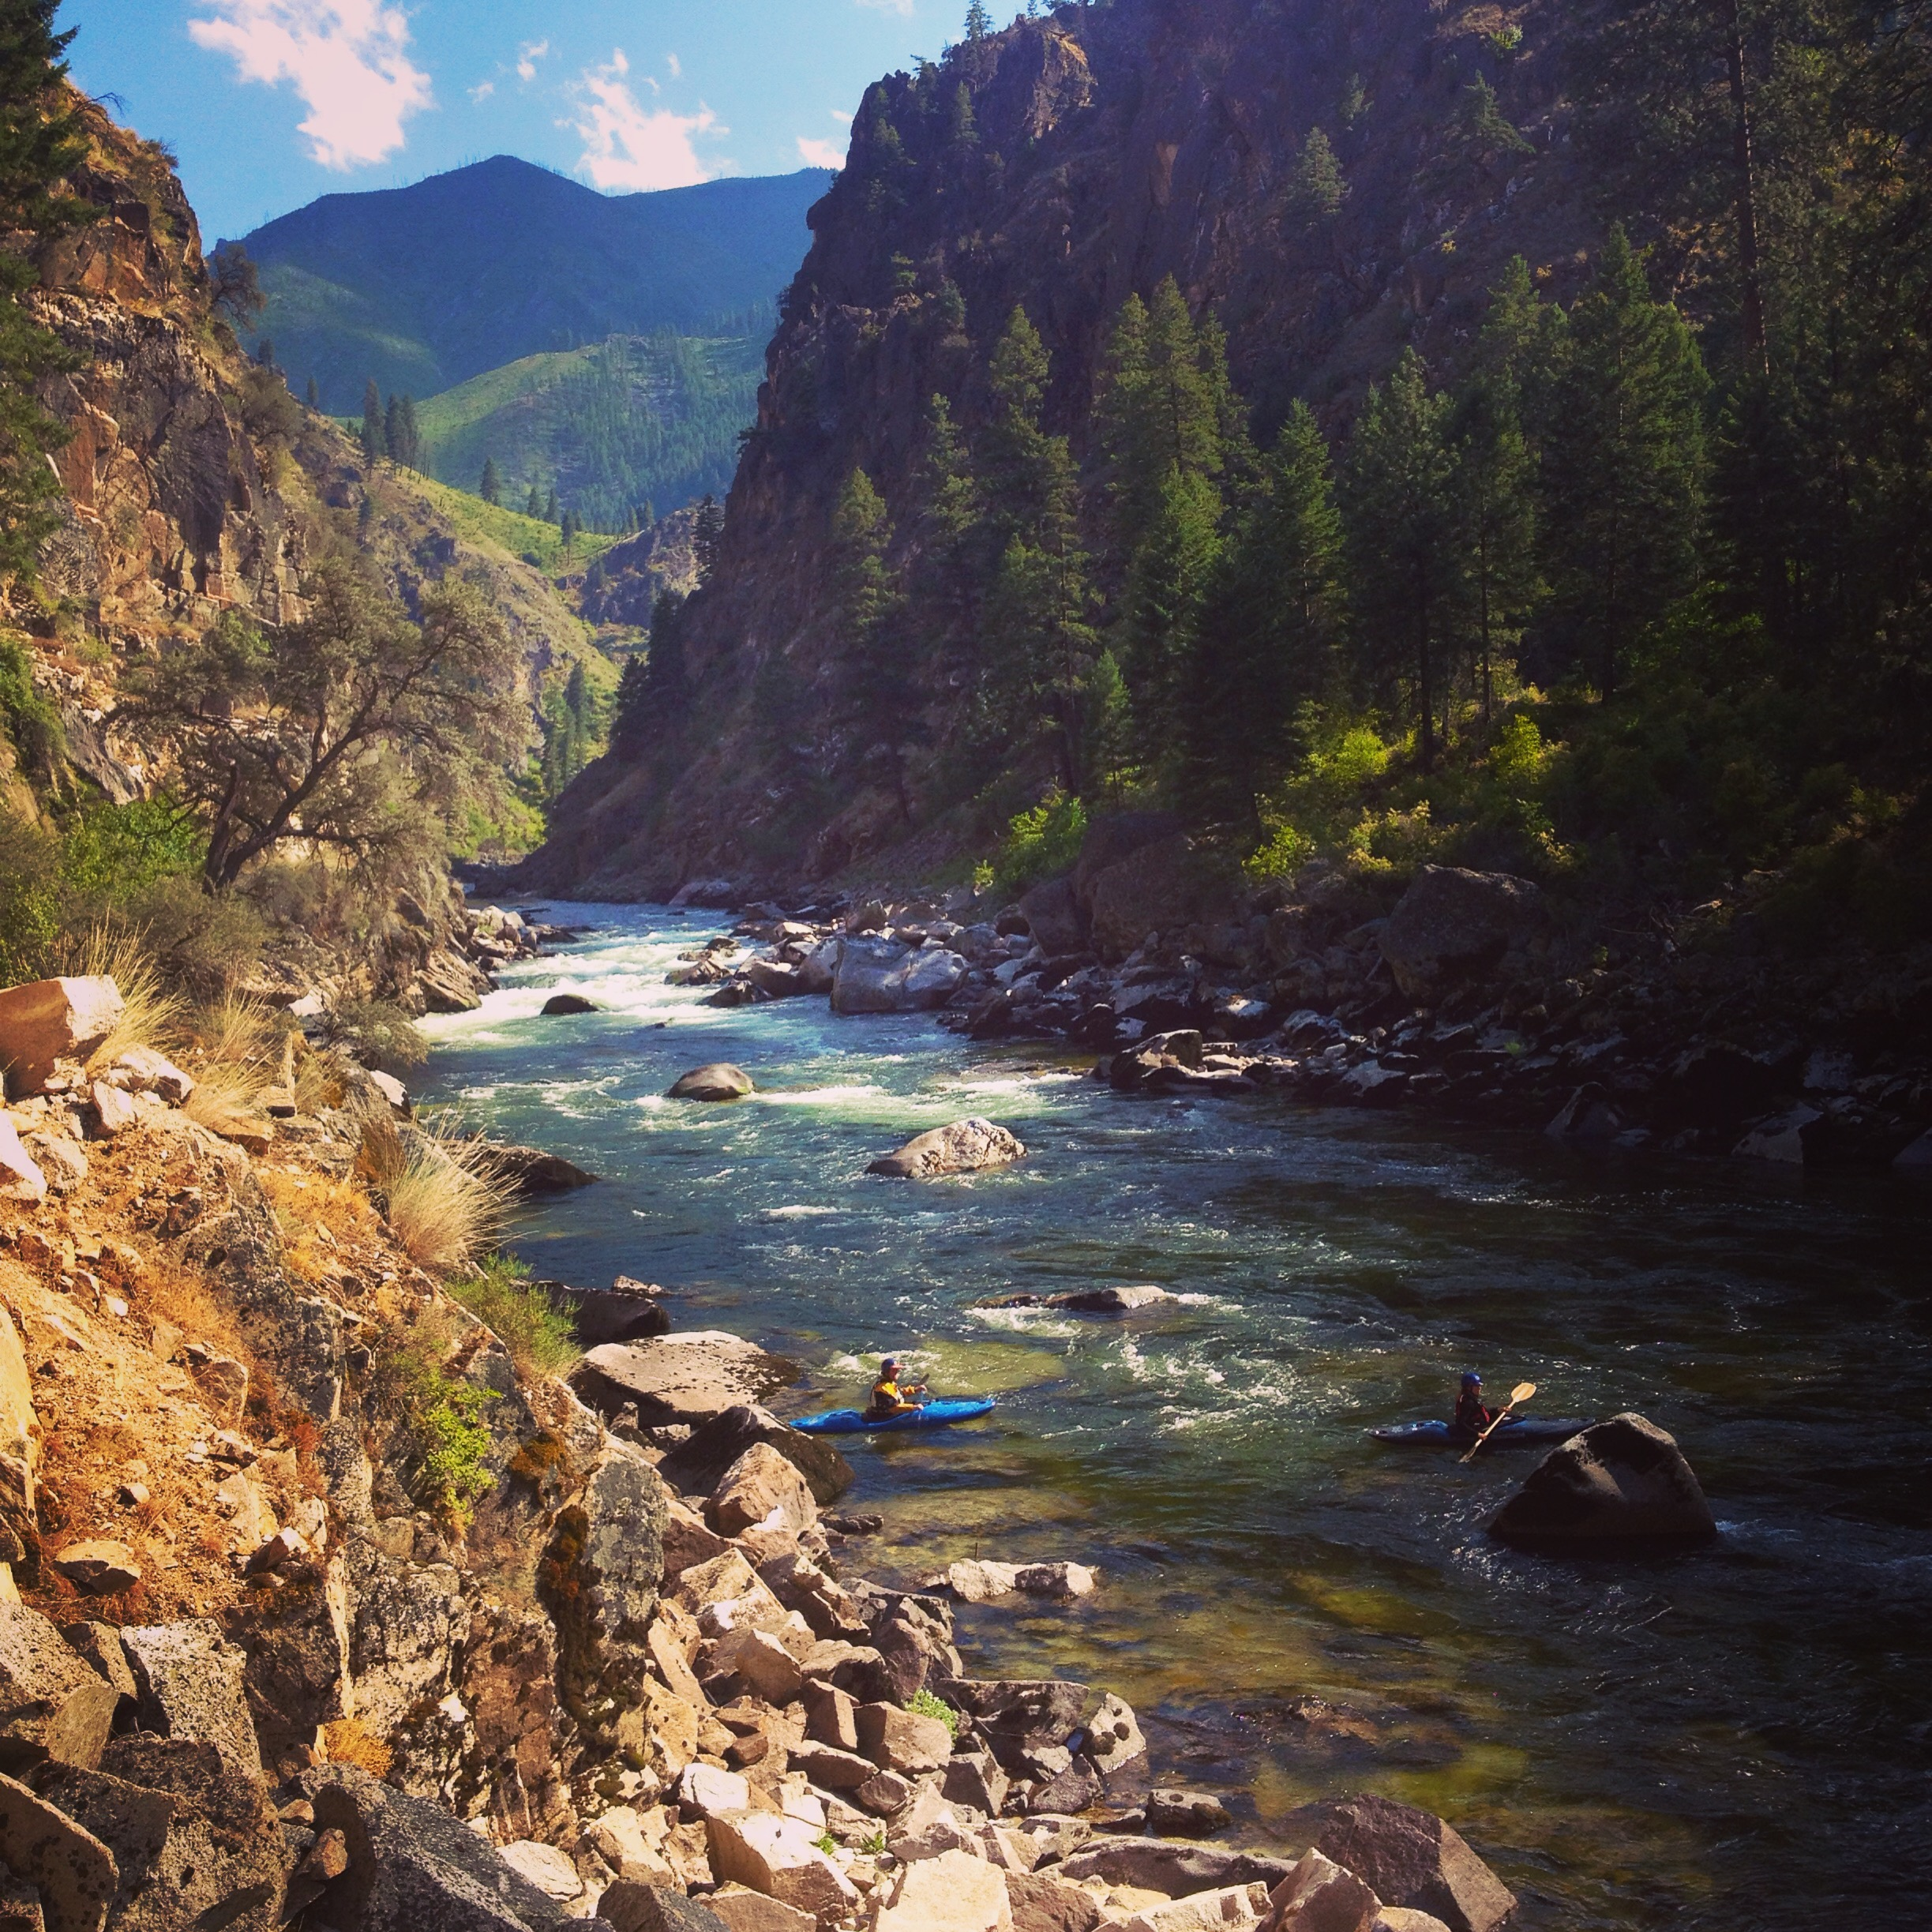 """Although I grew up in Idaho, I only ventured to the South Fork of the Salmon in recent years, and feel so grateful to know this special place. Unparalleled scenery, challenging whitewater, abundant wildlife—all in a remote backcountry setting. I applaud the efforts of Idaho Rivers United and all the individuals working to protect this gem of a river canyon. Let's preserve the South Fork for generations to come.""   -Laura Bechdel, McCall, Idaho"